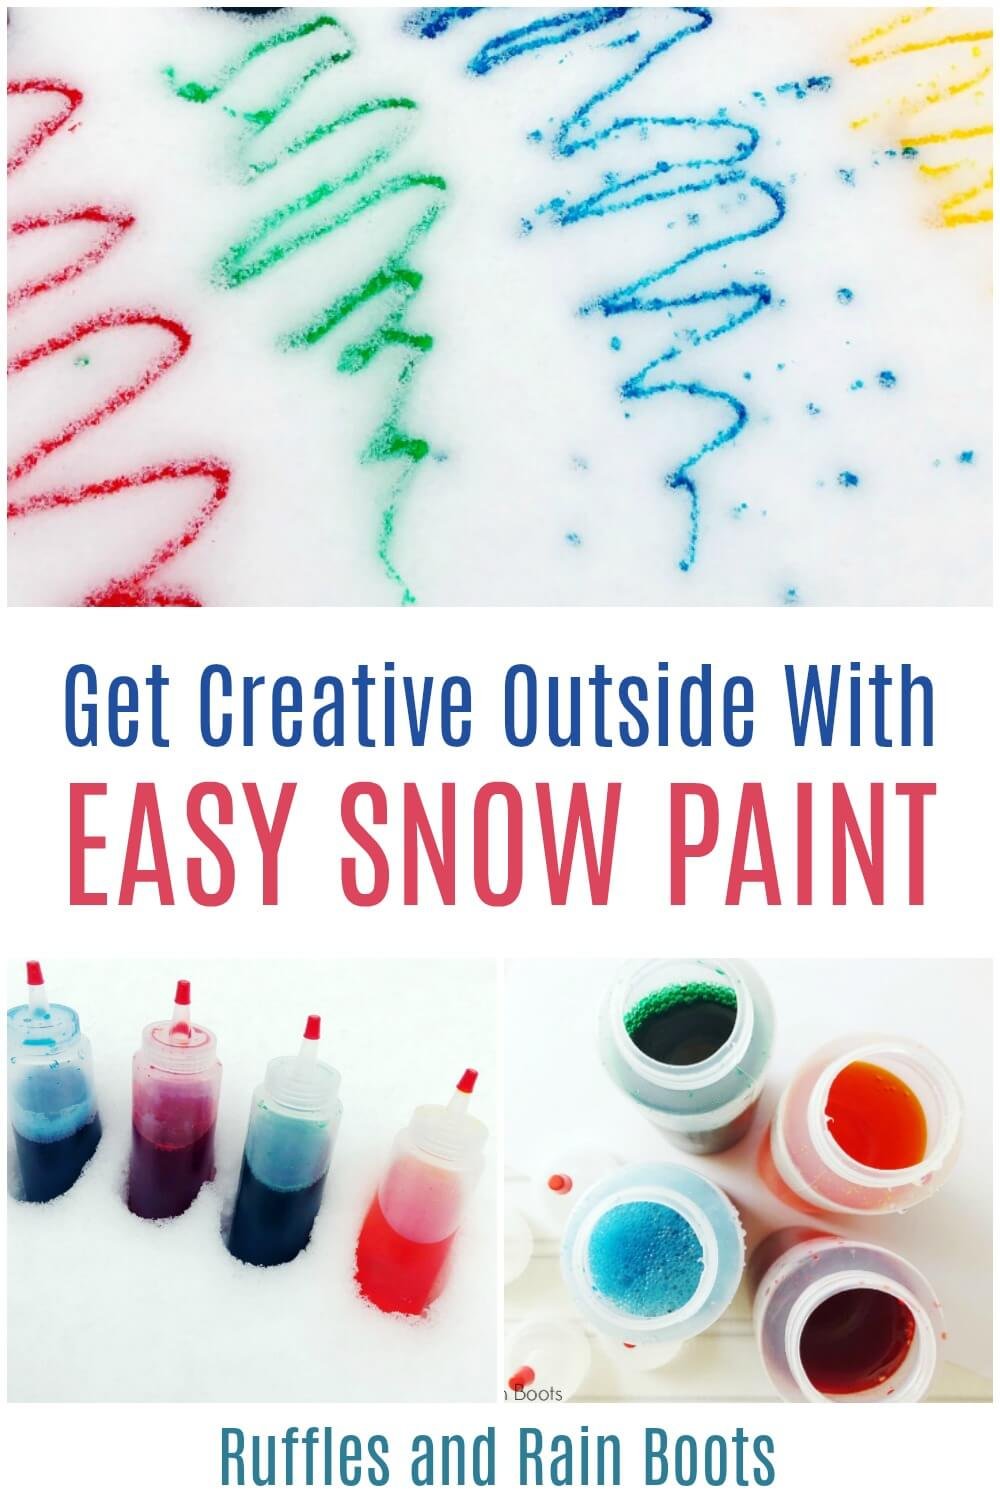 photo collage of colorful painted snow with text which reads get creative outside with easy snow paint